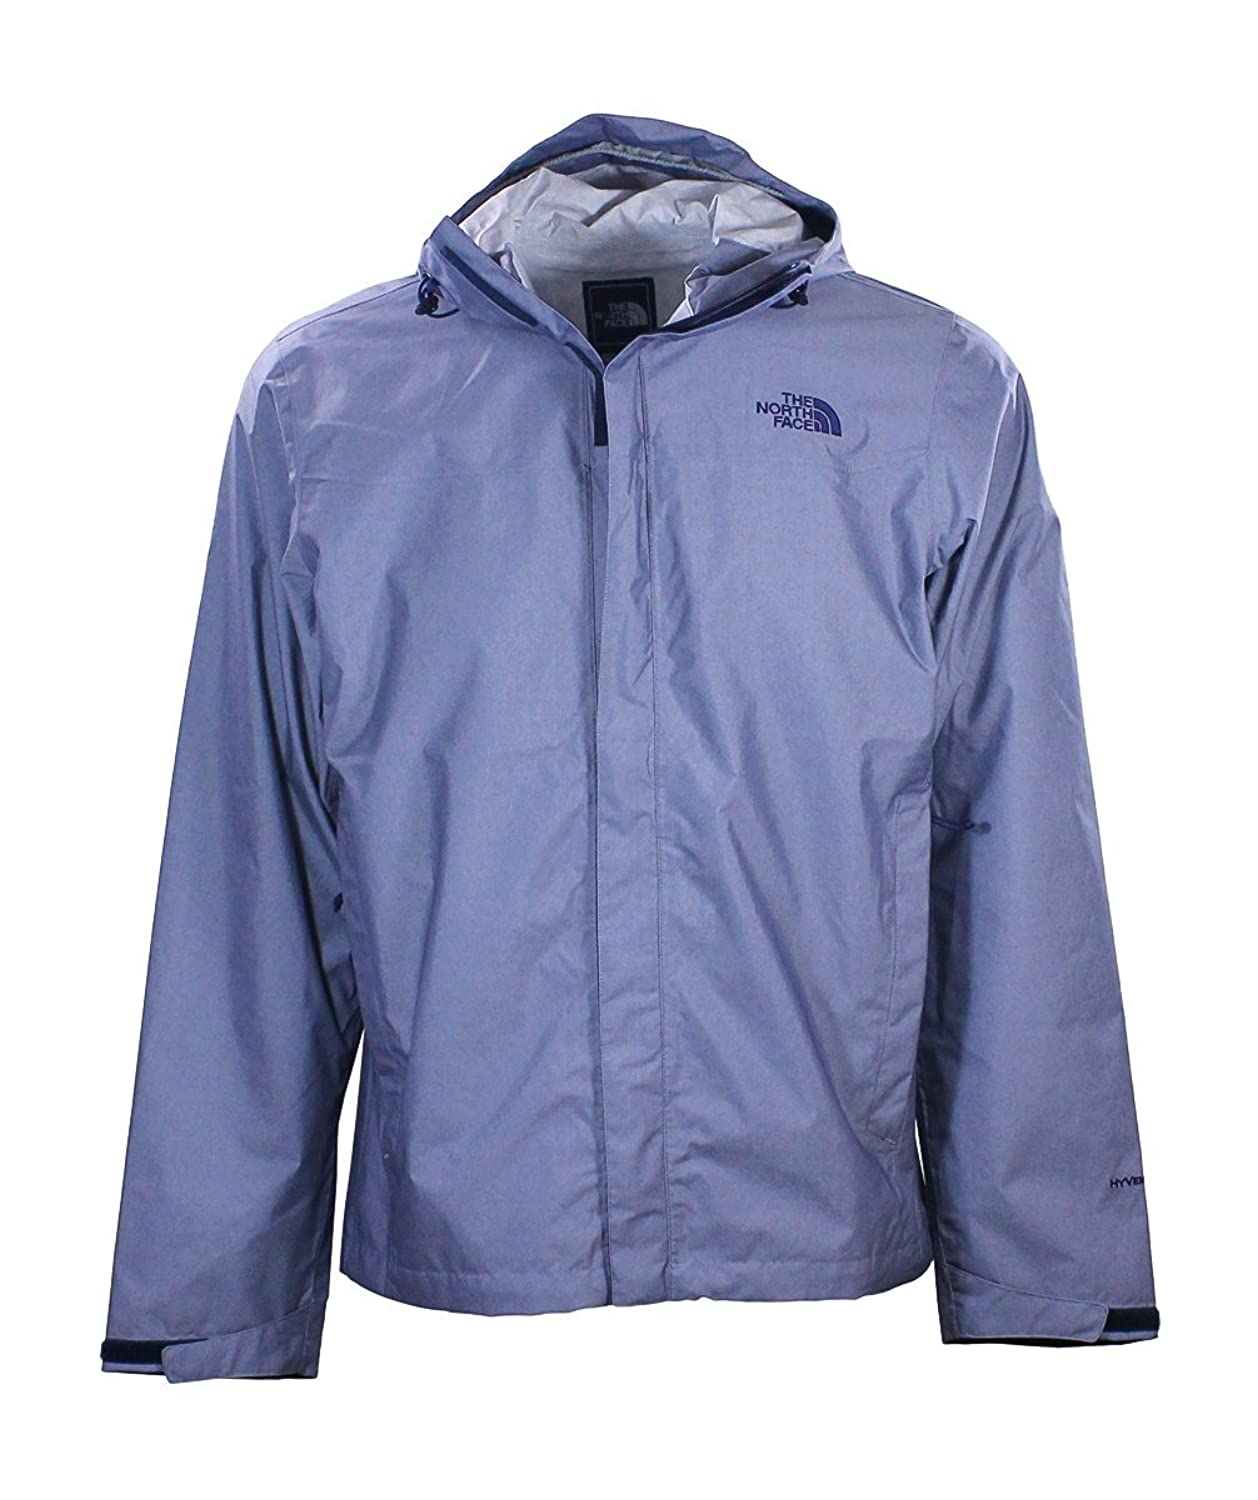 3a6a60d2381e 85%OFF The North Face Cosmic Blue Novelty Venture Jacket - snipe.no